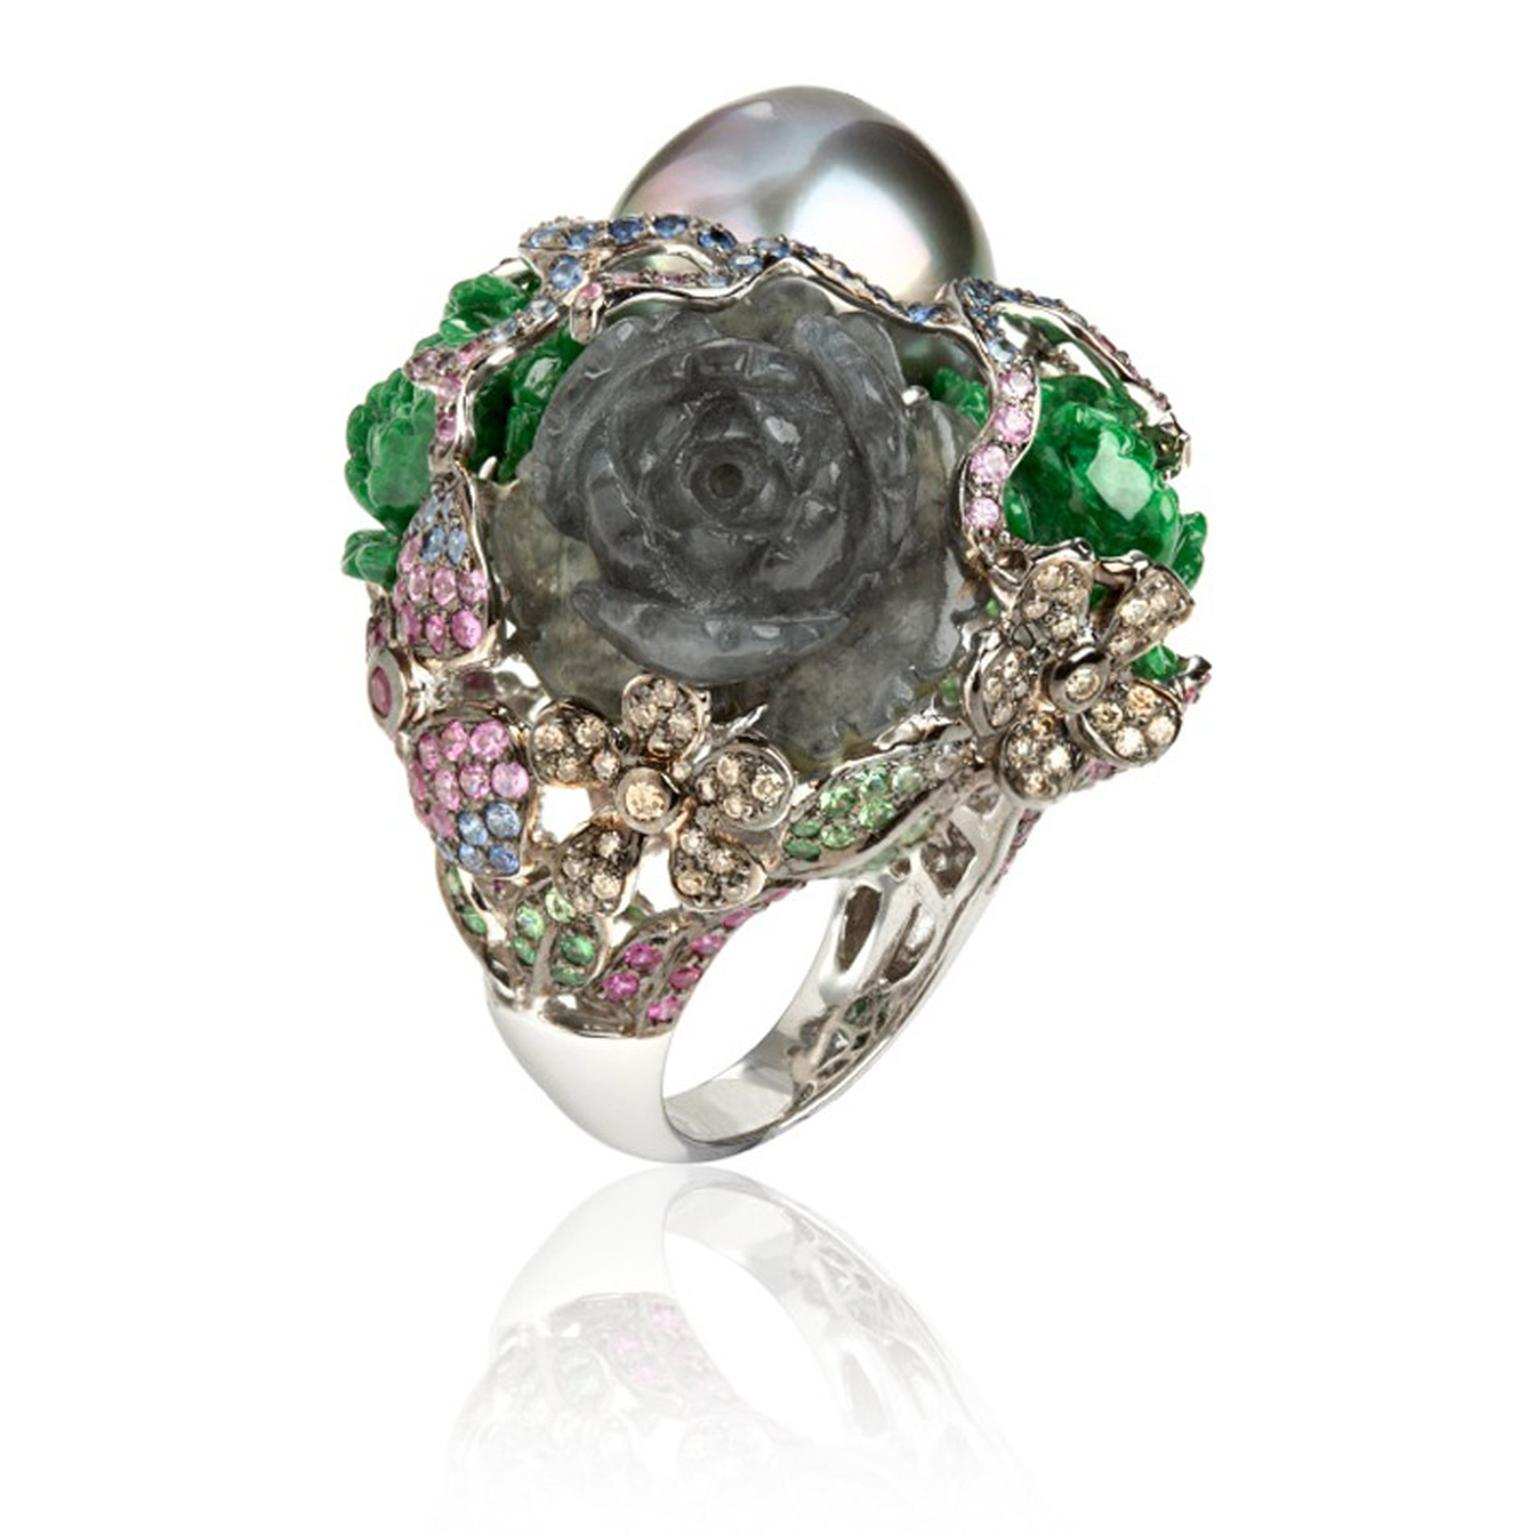 Wendy-Yue-Fantasie-18ct-white-gold-pearl--diamond-sapphires-garnetjade-and-tourmaline-Perilous-Pearl-ring-By-Wendy--Yue-for-Annoushka.jpg